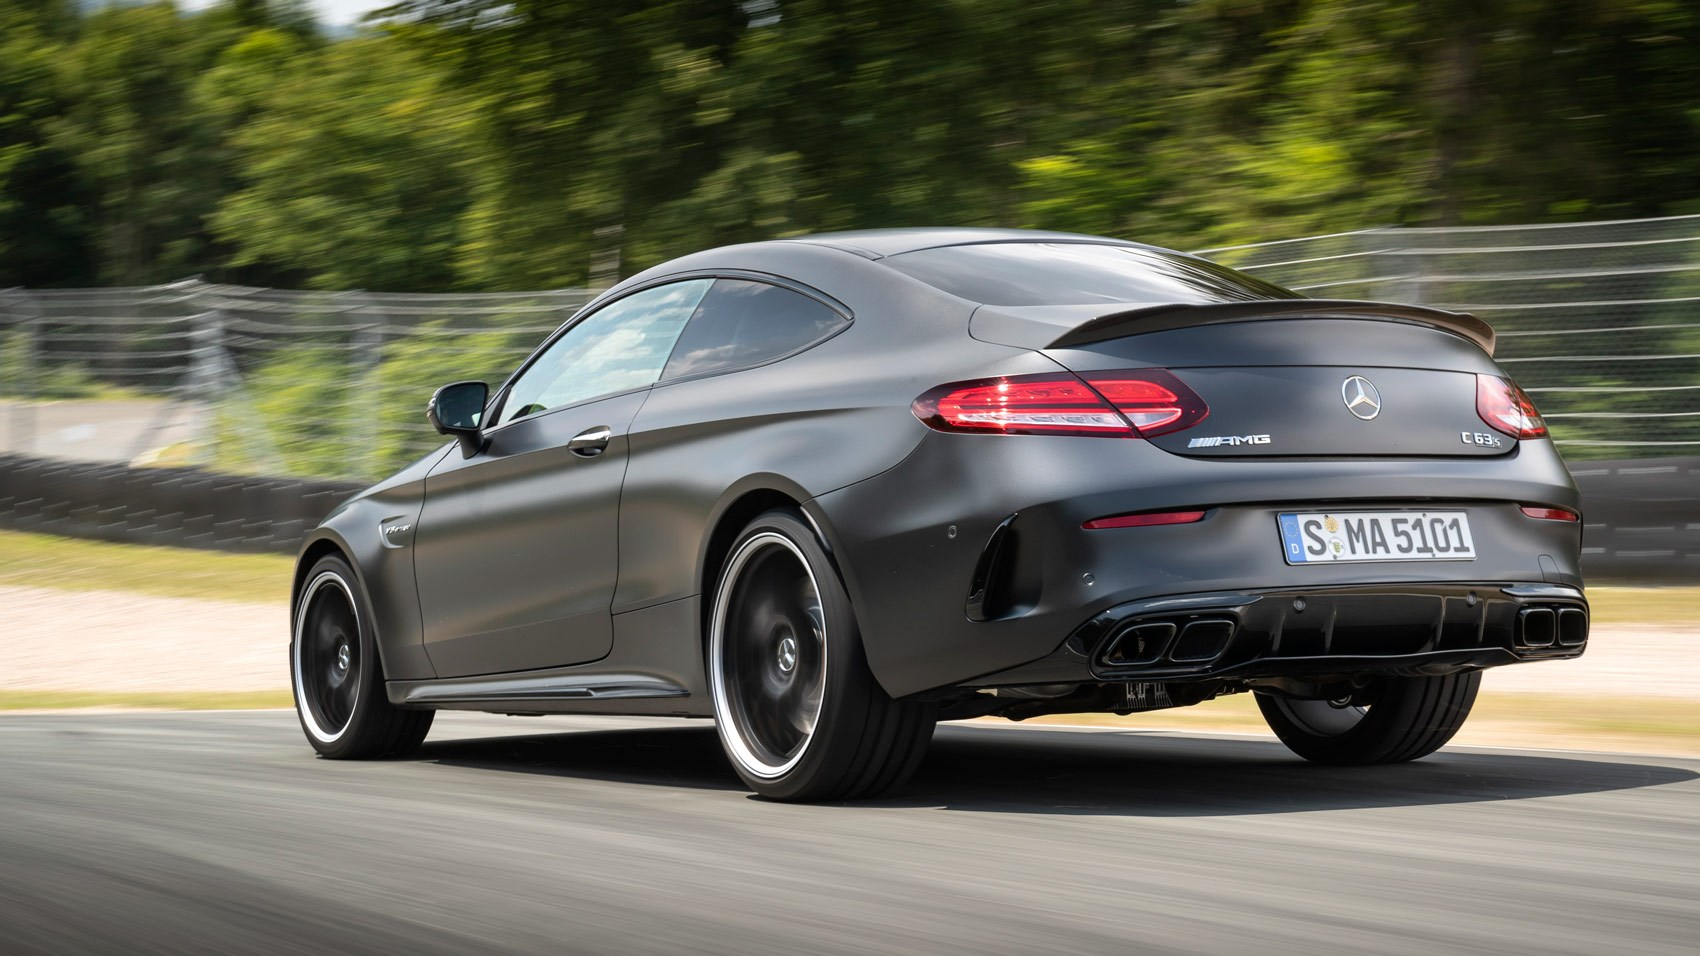 C63 Amg Coupe >> Mercedes Amg C63 S Coupe 2018 Review Endlessly